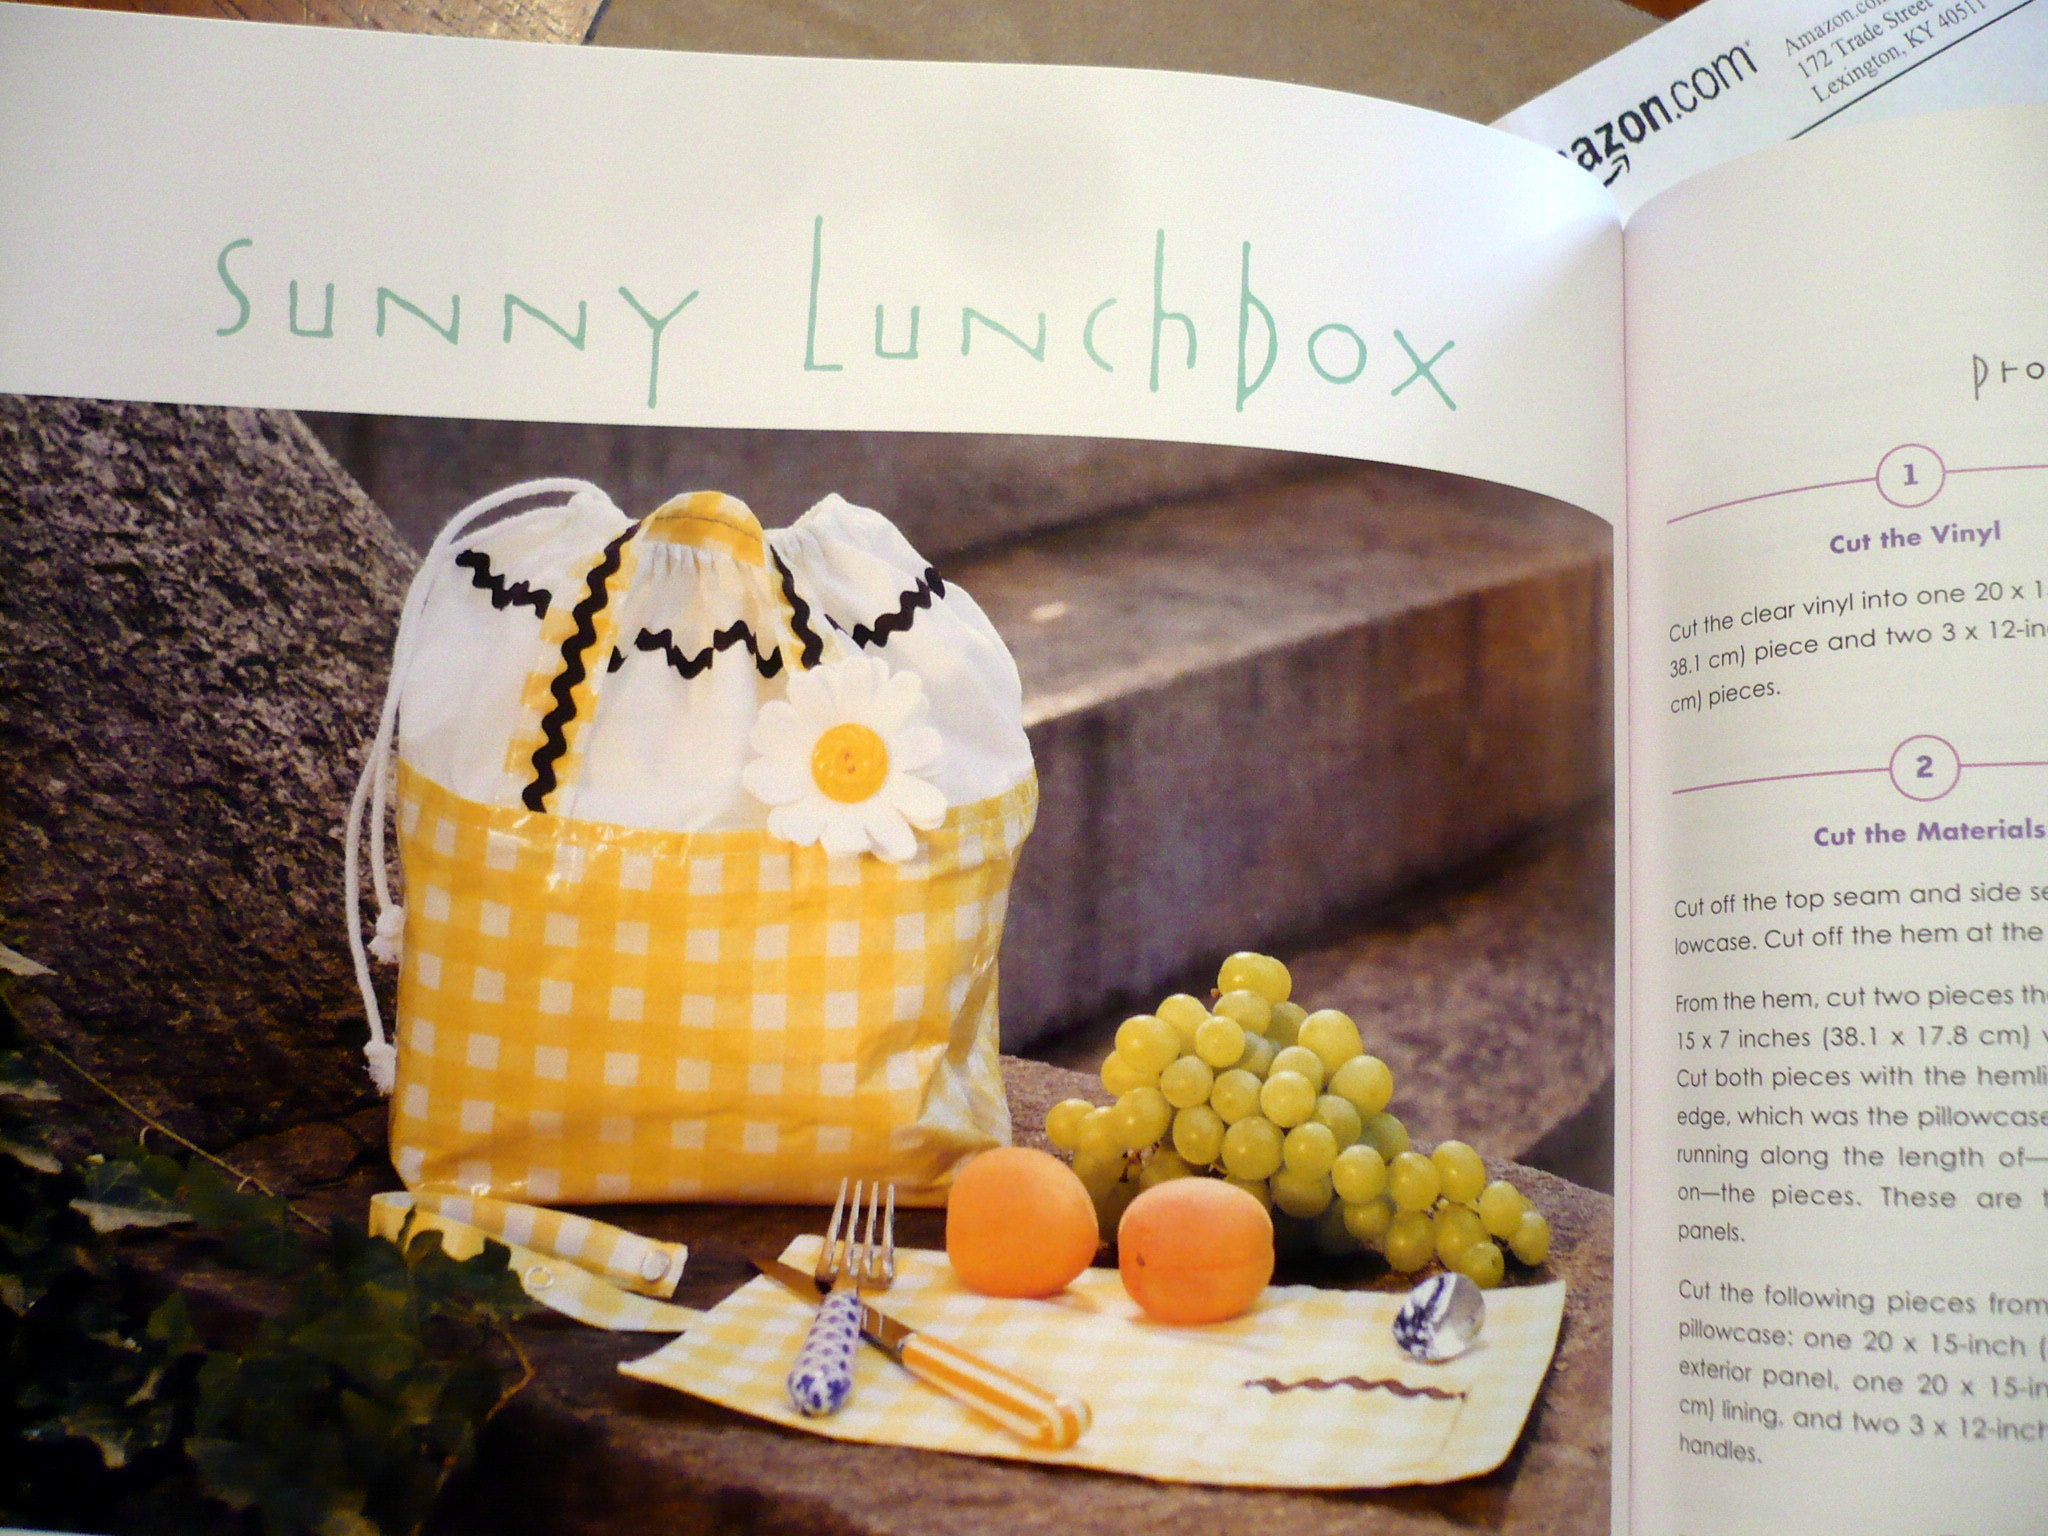 sunny lunchbox